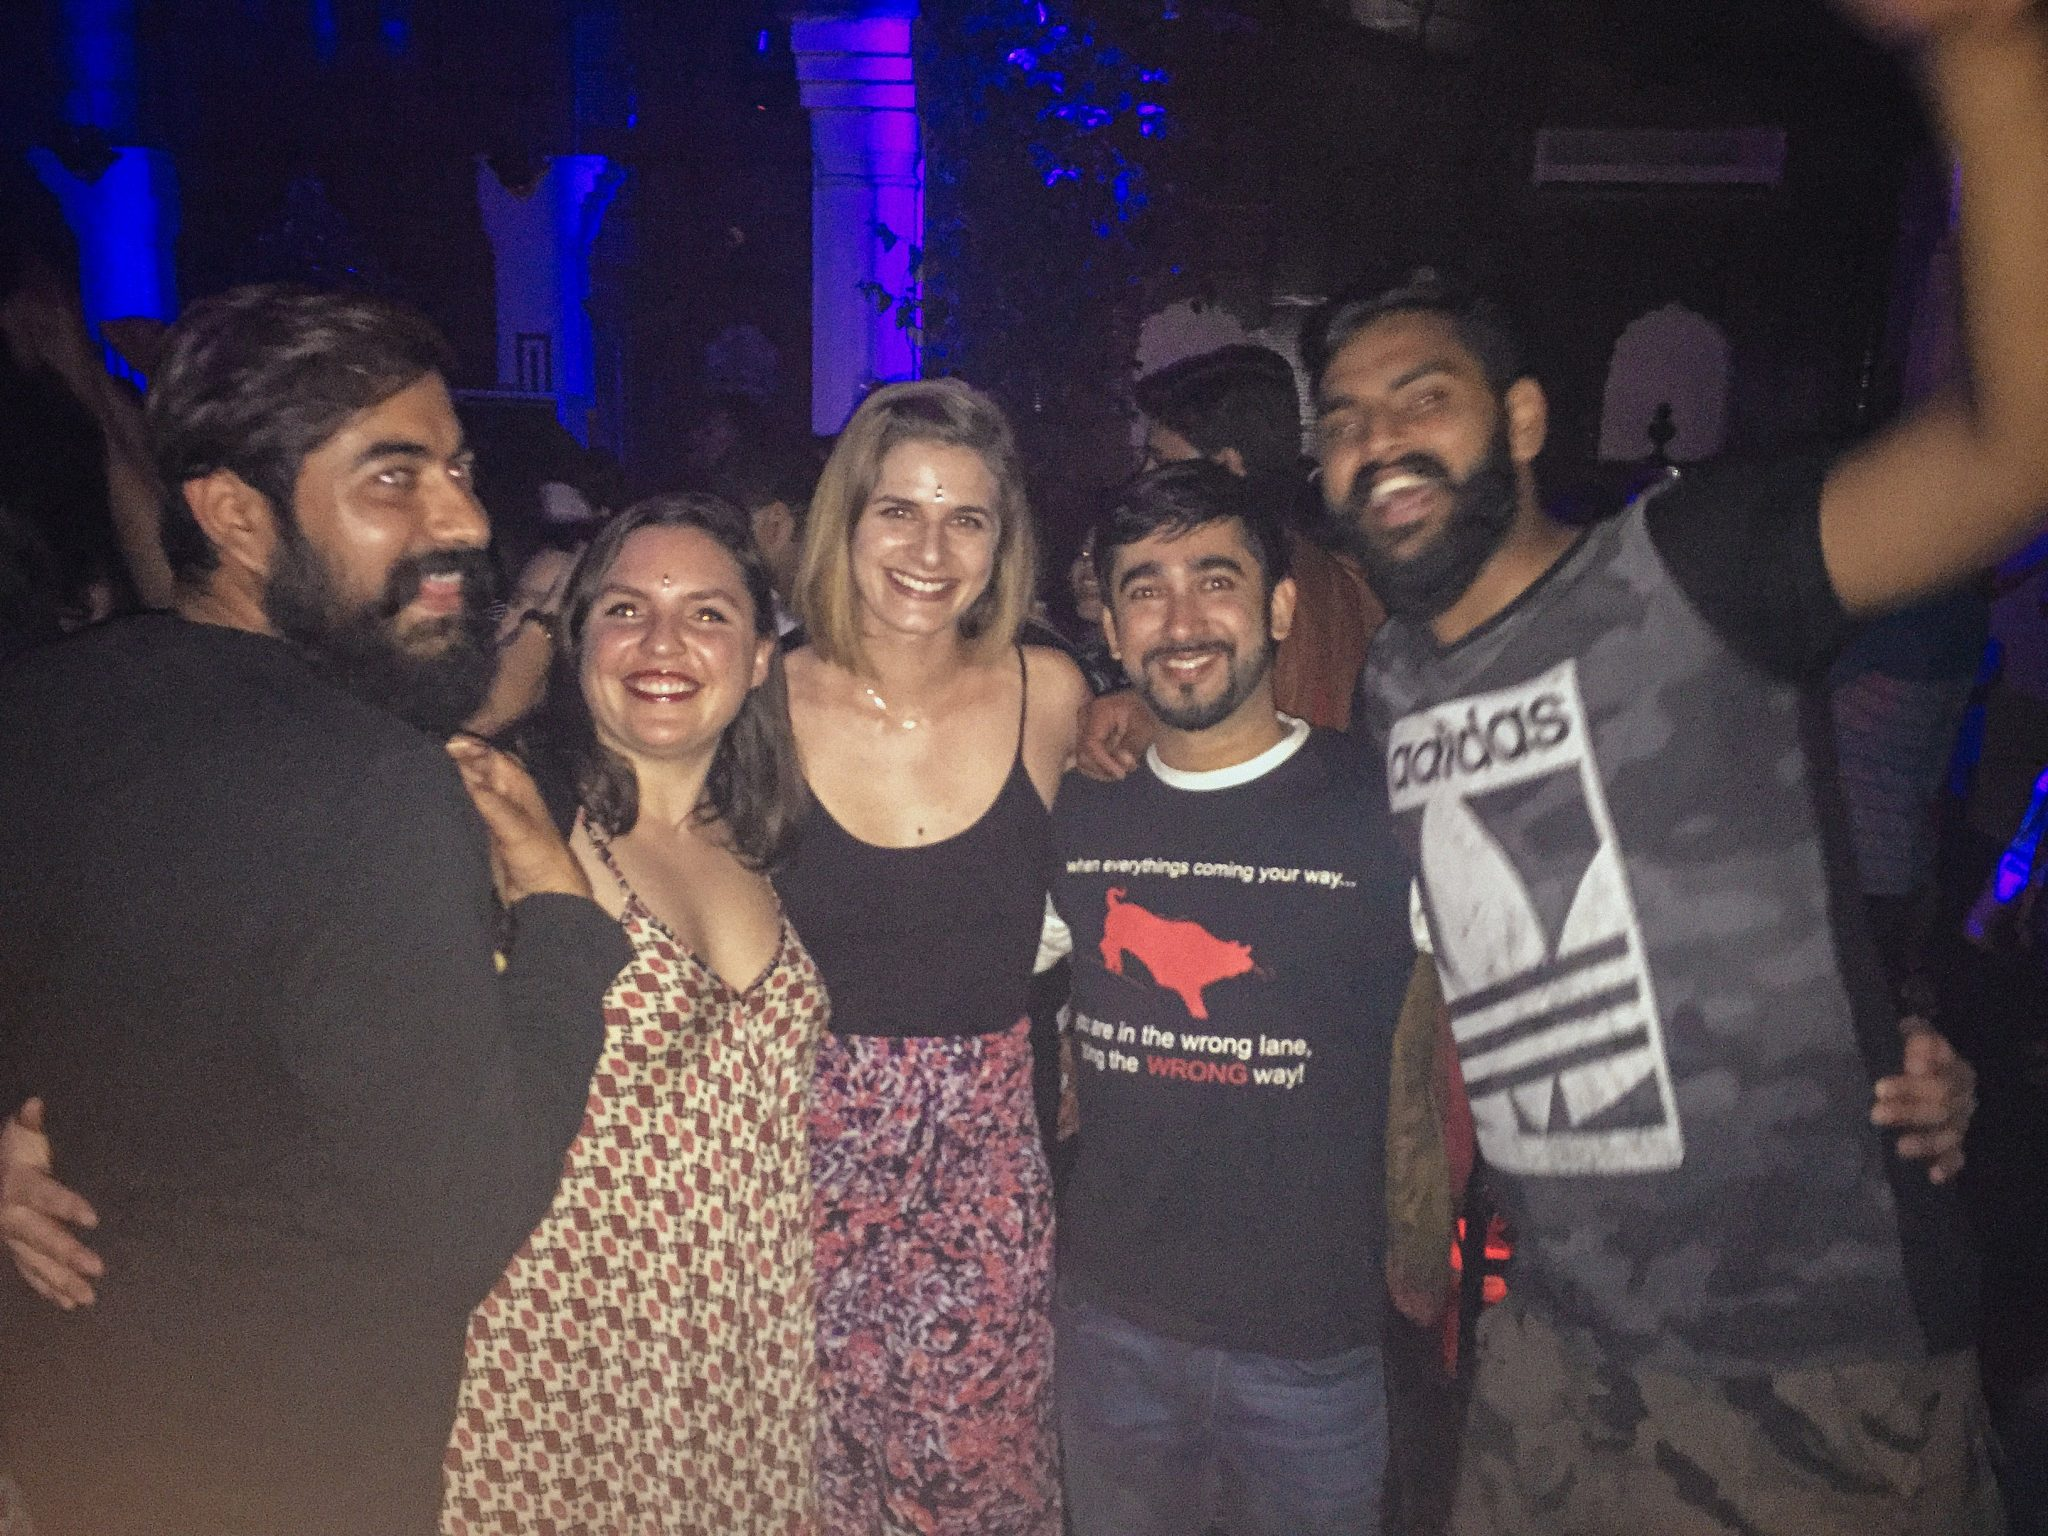 Clubbing in Jaipur, Rajasthan | 2 Weeks in India